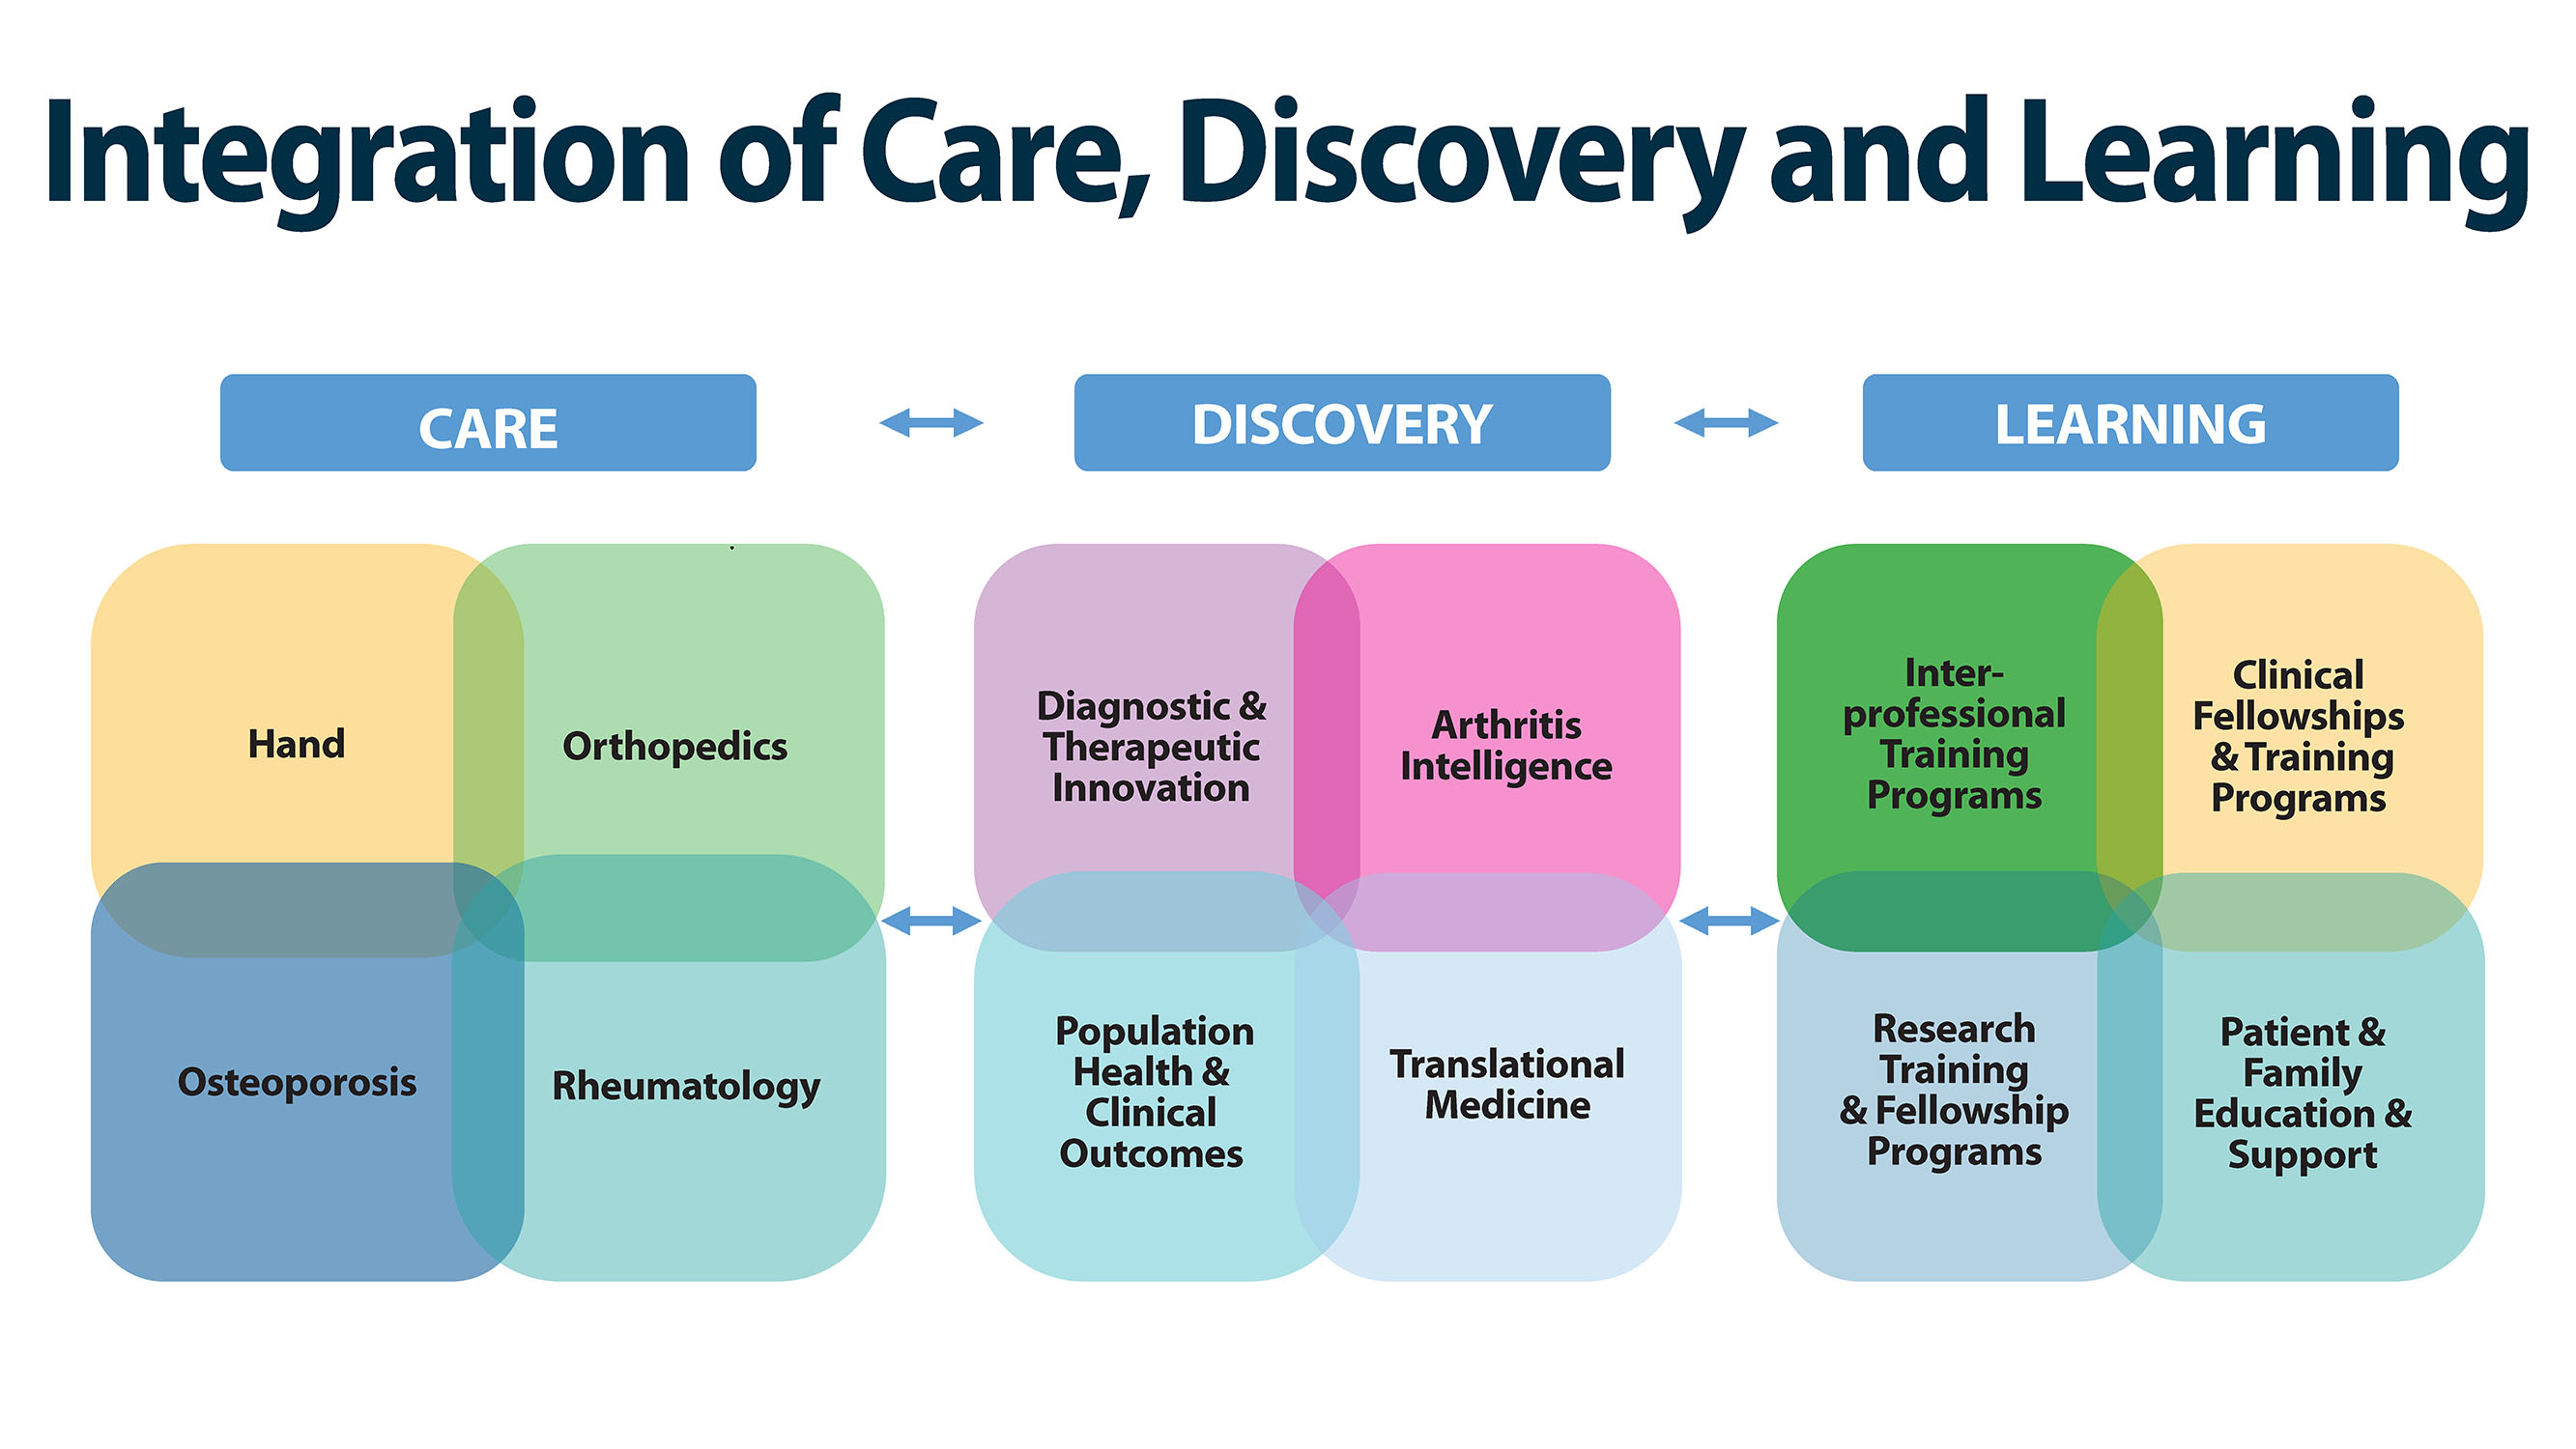 Integration of Care, Discovery and Learning. 1. Care: Hand, Orthopedics, Osteoporosis, Rheumatology. 2. Discovery: Diagnostics and therapeutic innovation; arthritis intelligence; population health and clinical outcomes; translational medicine. 3. Learning: Interprofessional training programs; clinical fellowships and training programs; research training and fellowship programs; patient and family education and support